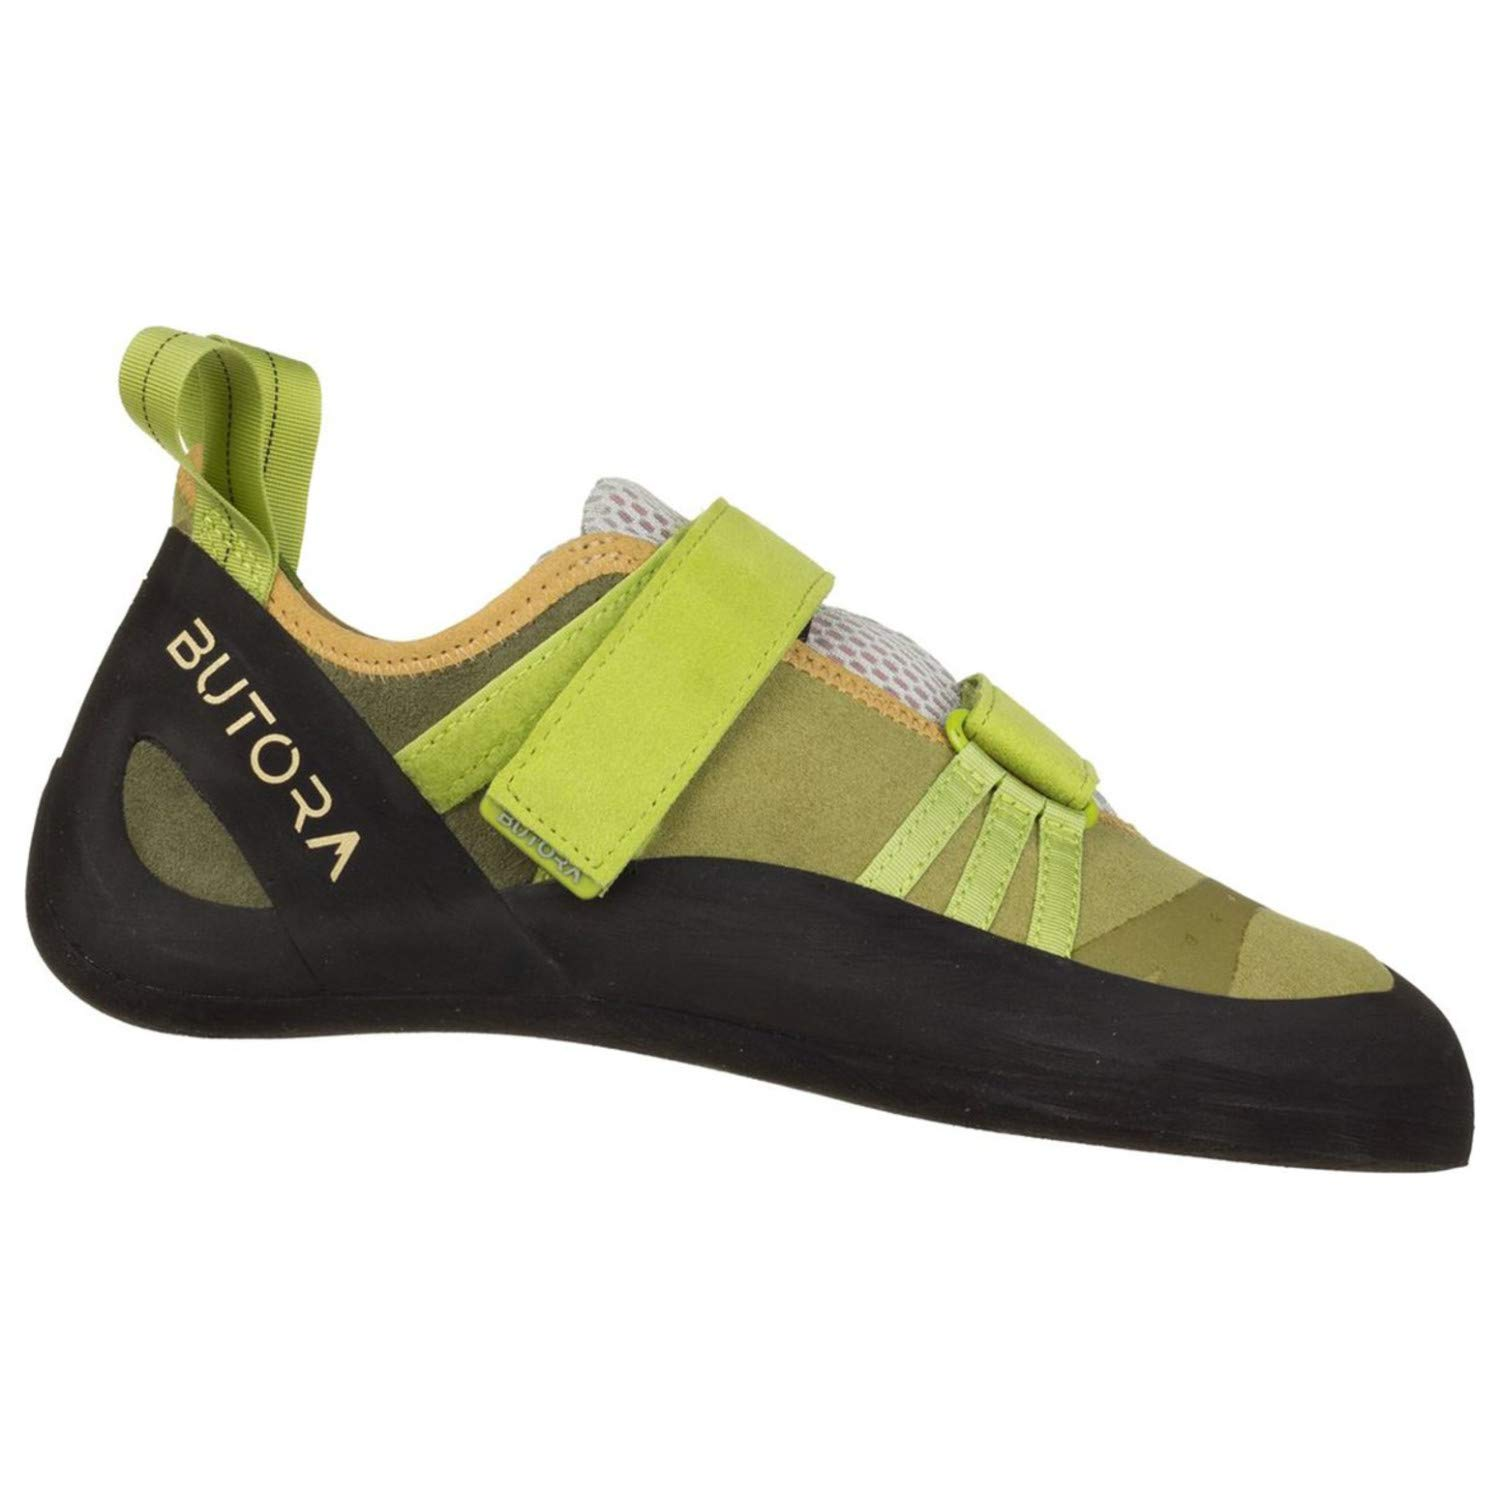 BUTORA Men's Endeavor Moss - Wide Fit, Color: Moss, Size: 11 (ENDE-MOSS-WF-M-11) by Butora